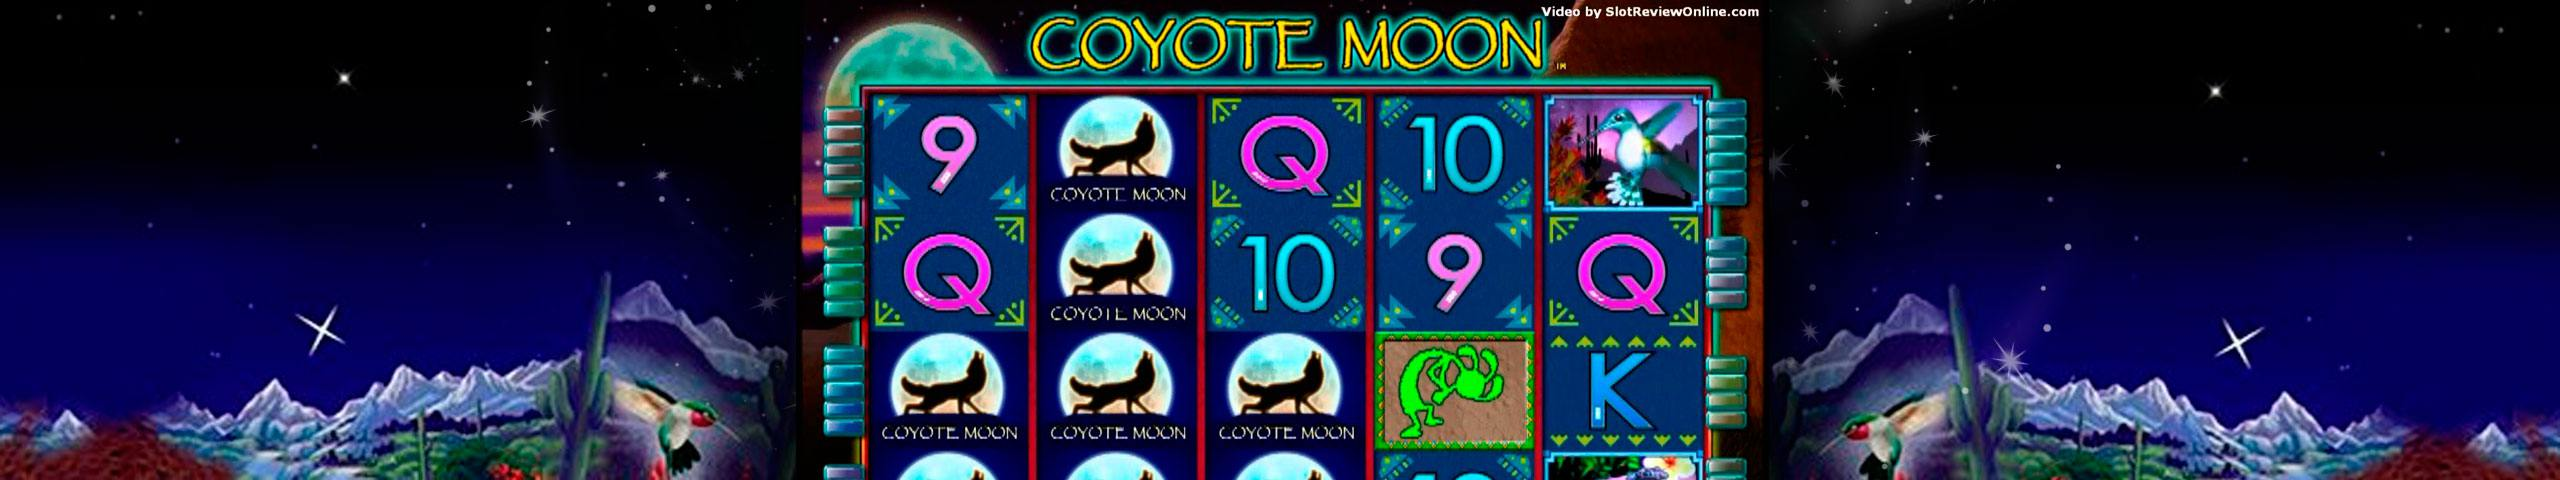 Coyote Moon spelautomater IGT (WagerWorks)  wyrmspel.com